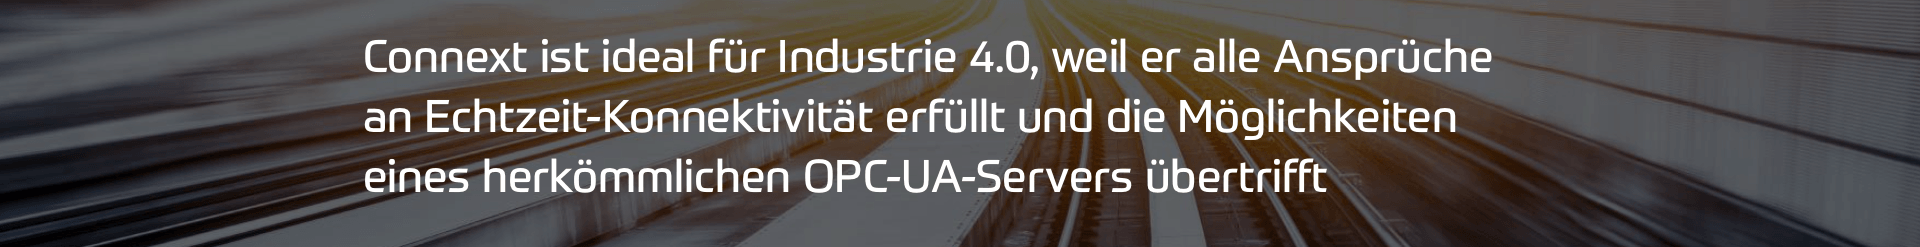 Connext OPC UA Server Vorteile